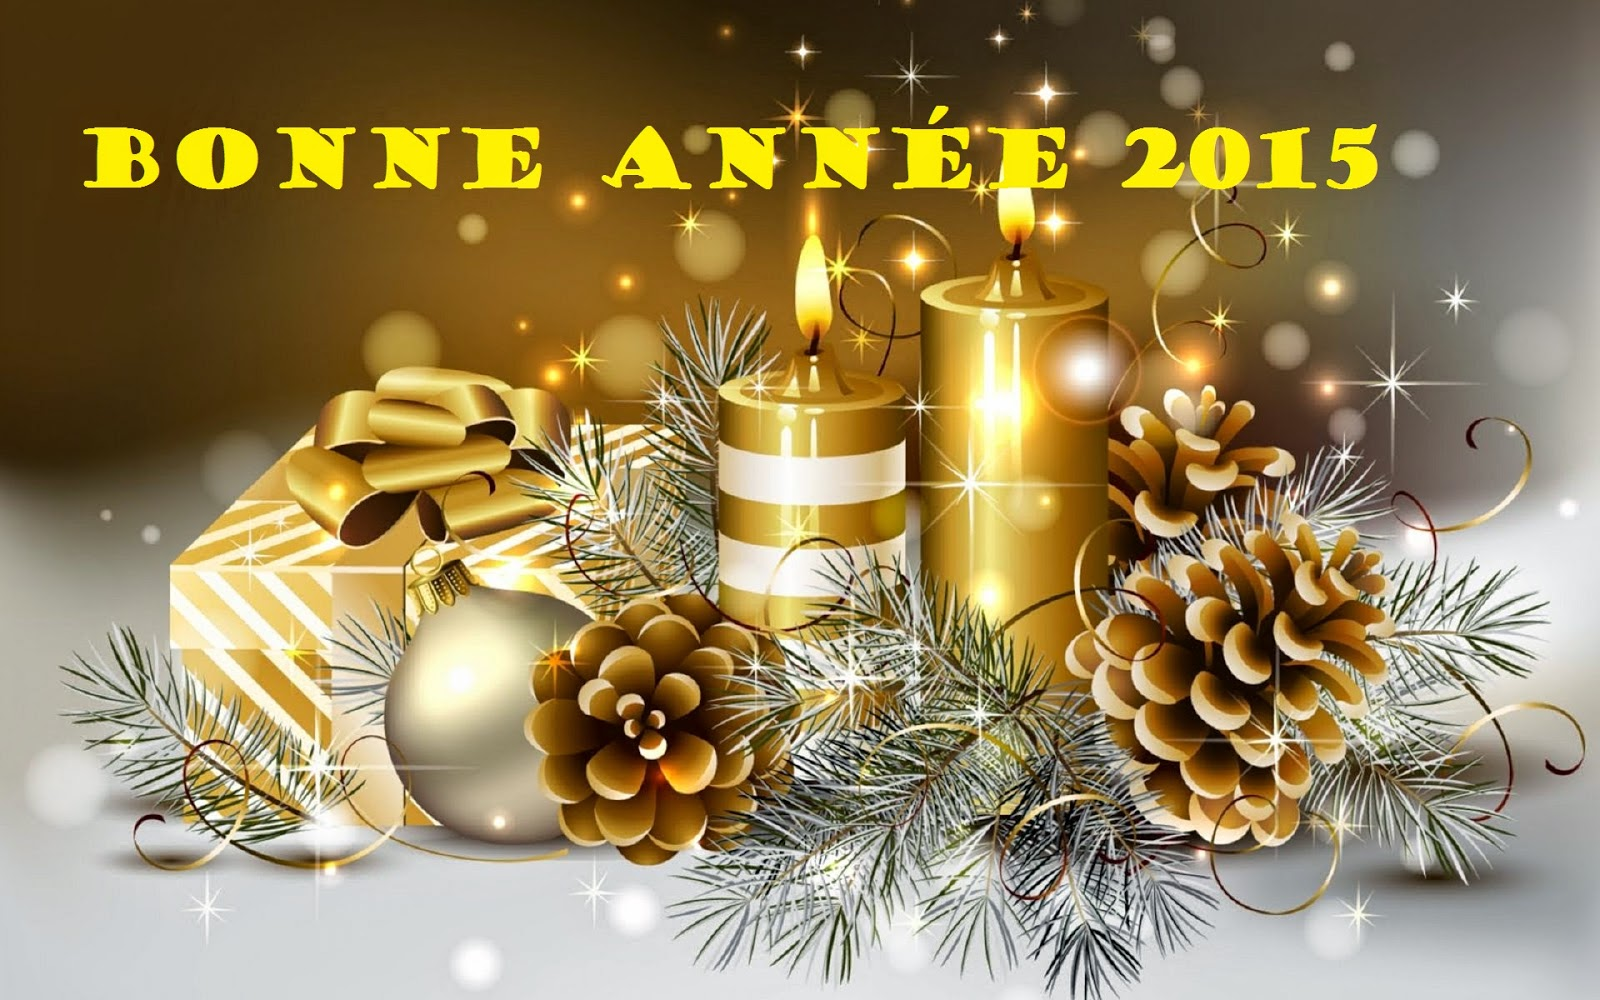 SMS bonne ann��e 2015: Best and Popular for Whatsapp for free.